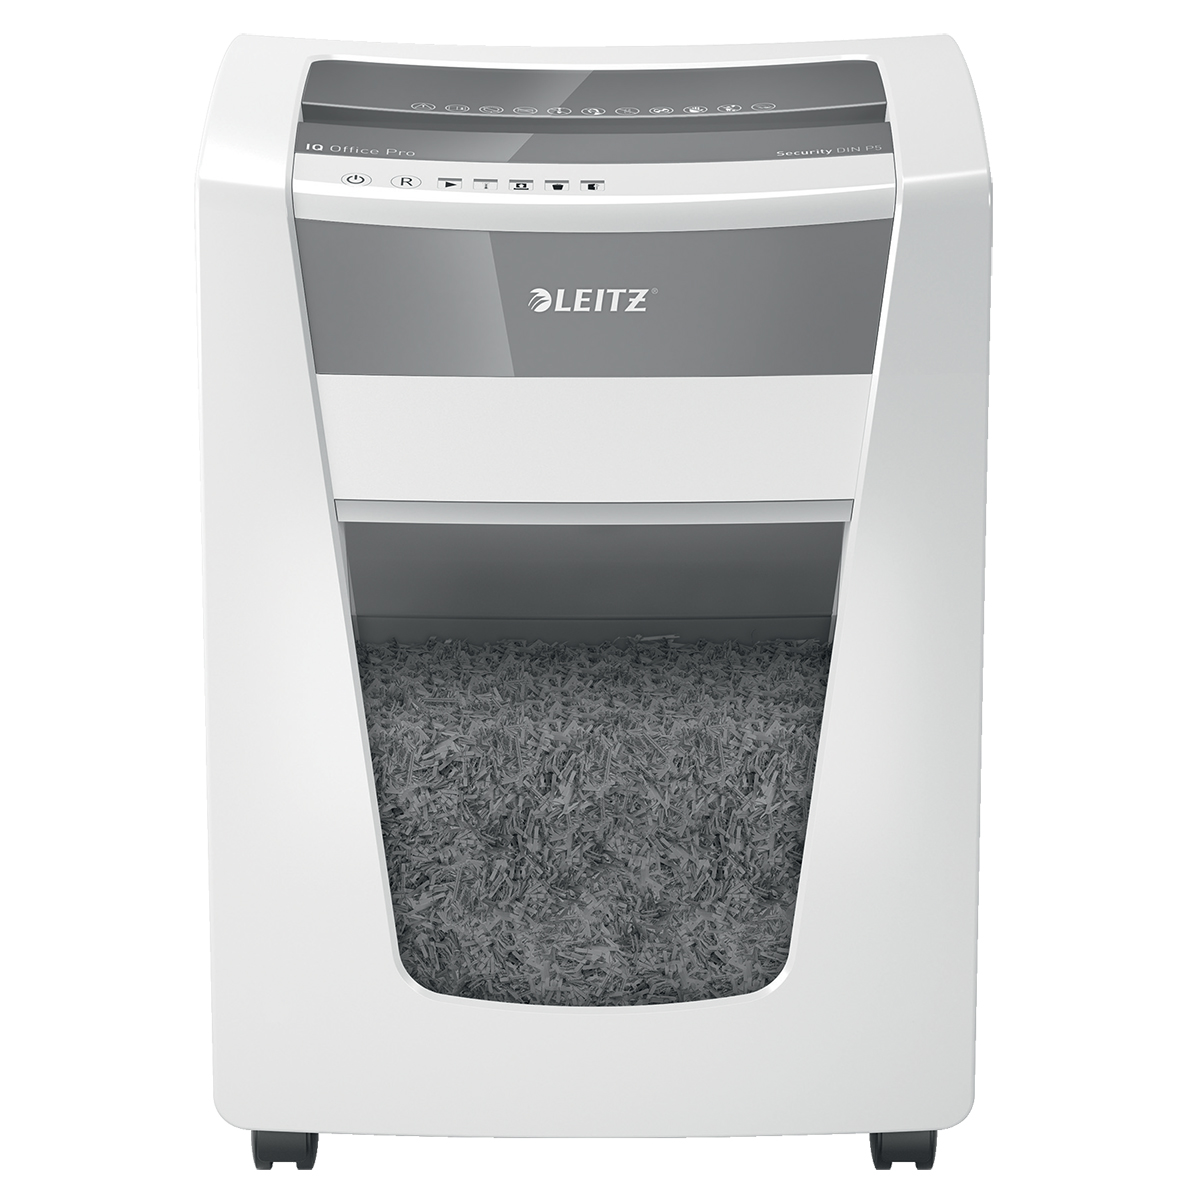 Leitz IQ Office Pro Micro Cut Shredder - P5